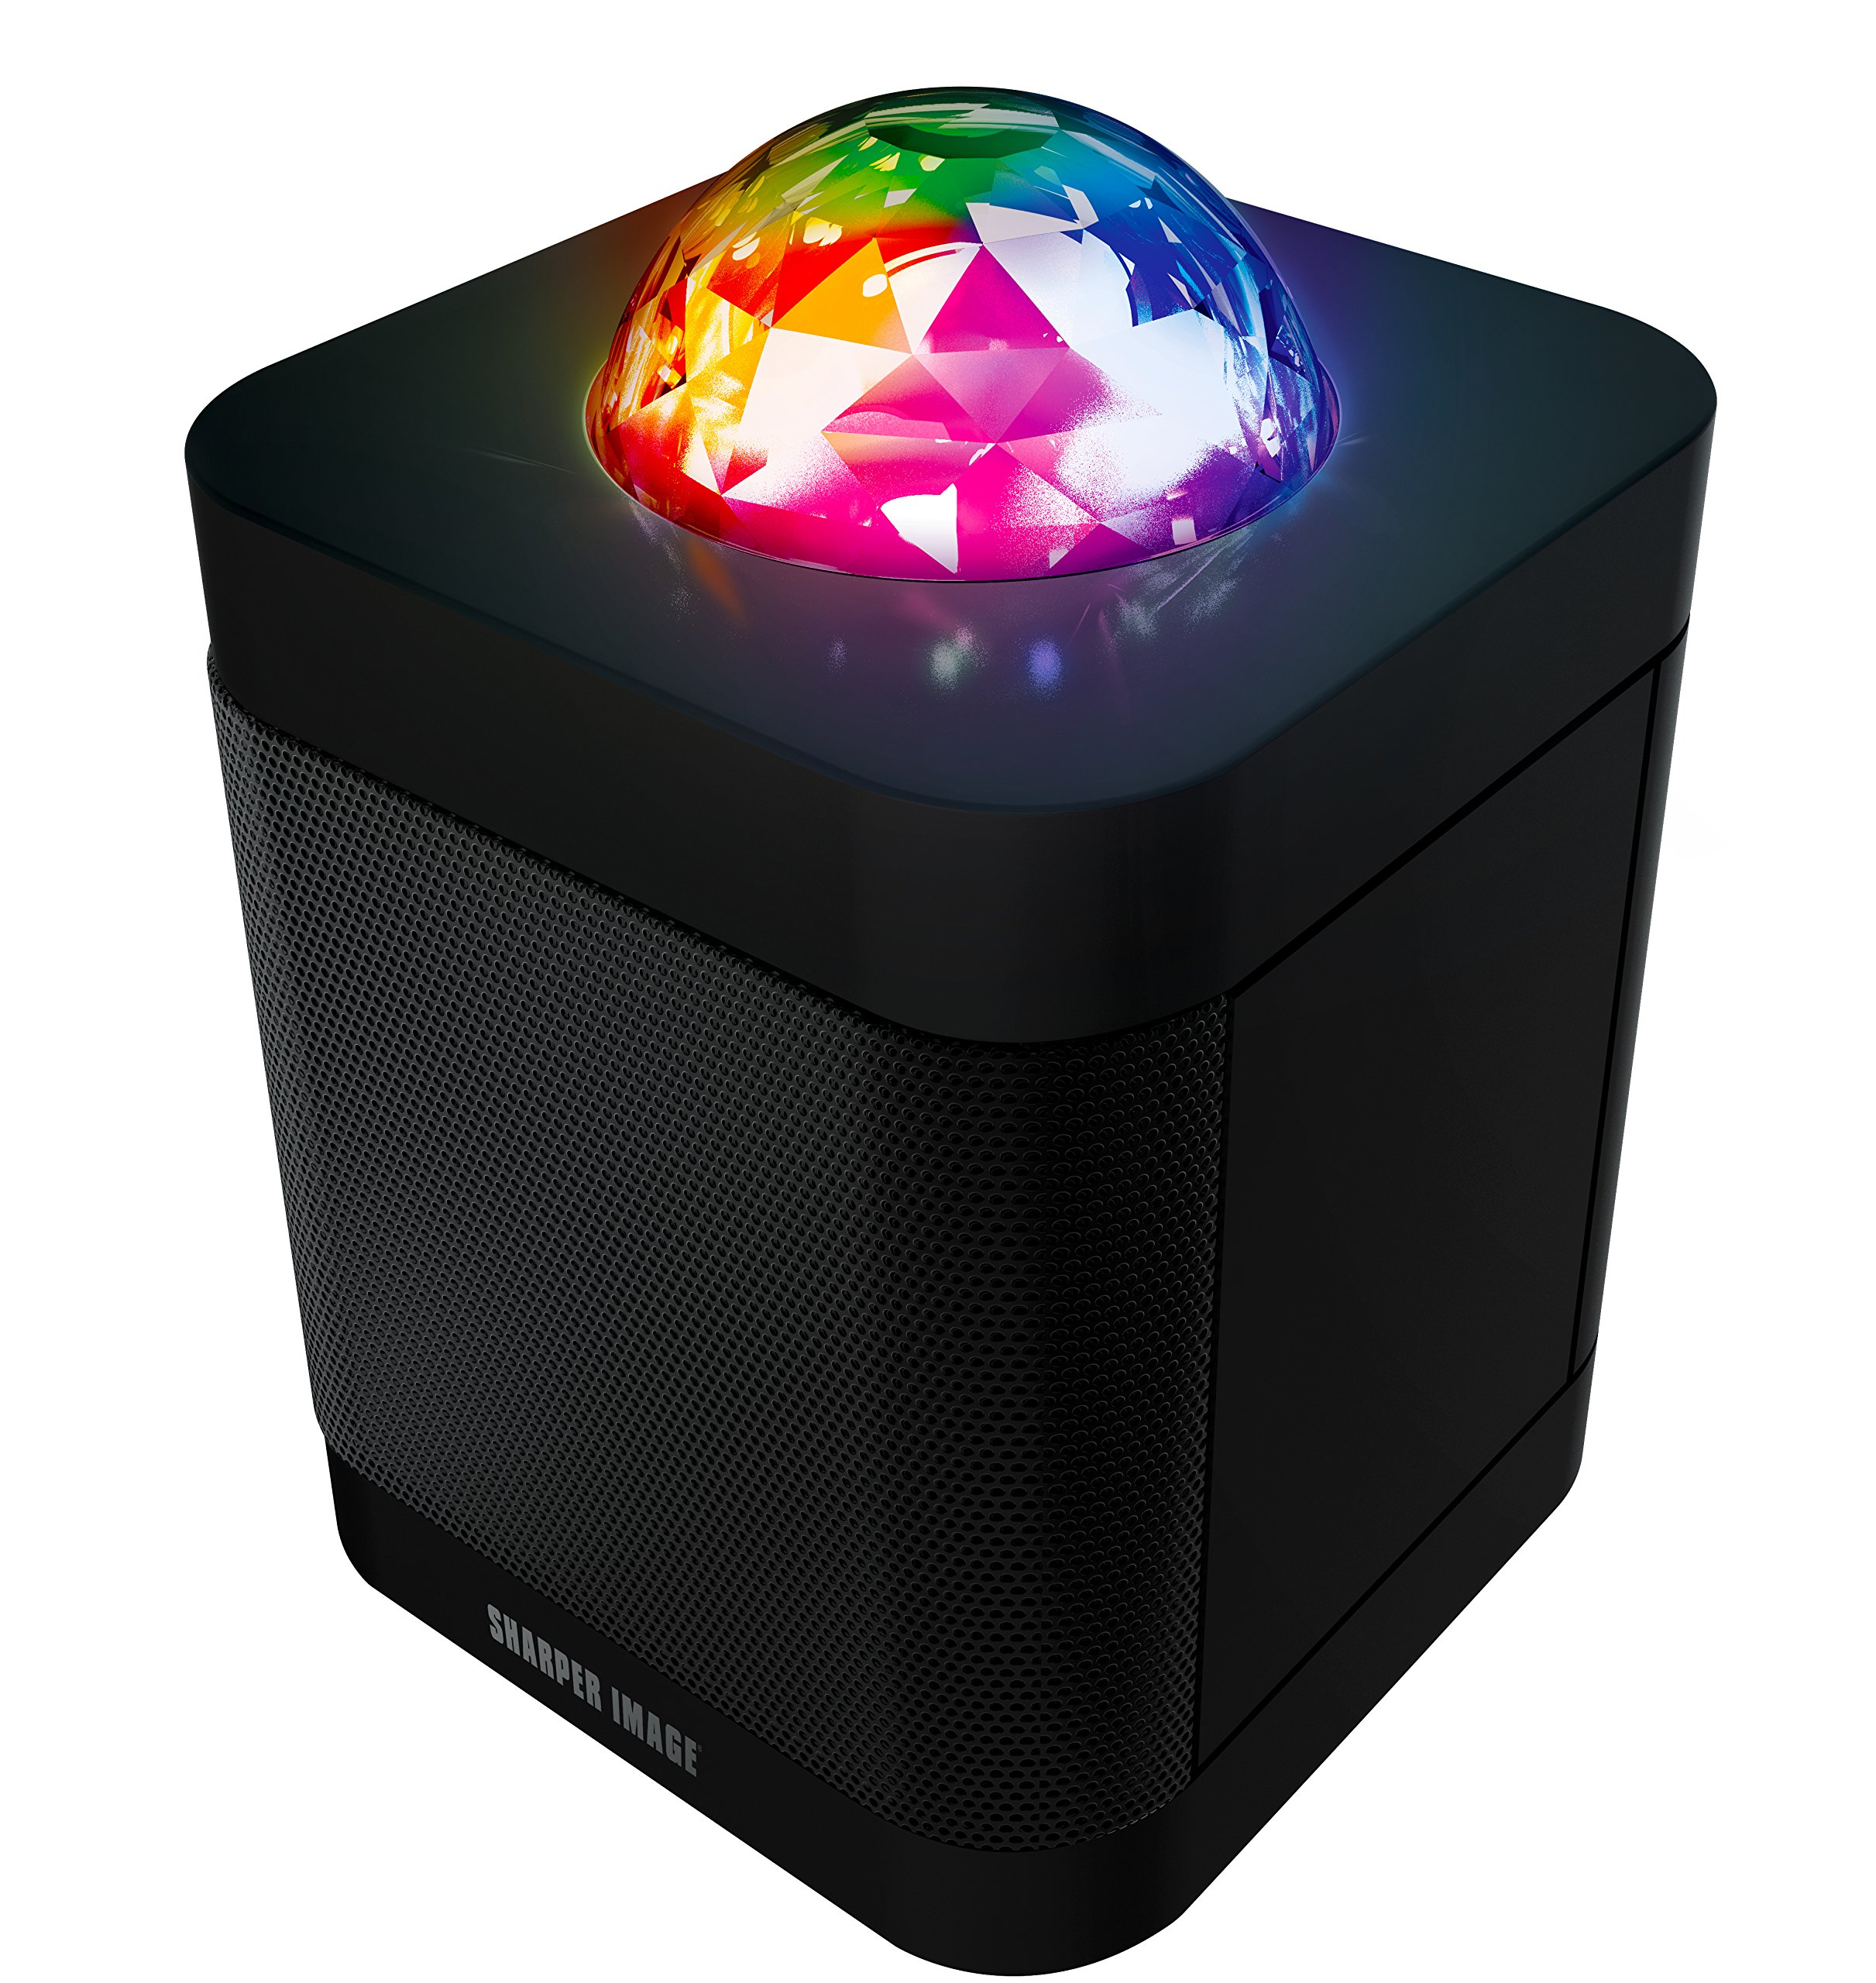 Amazon.com: AXESS SPBL1049 Crystal Vibe LED Bluetooth